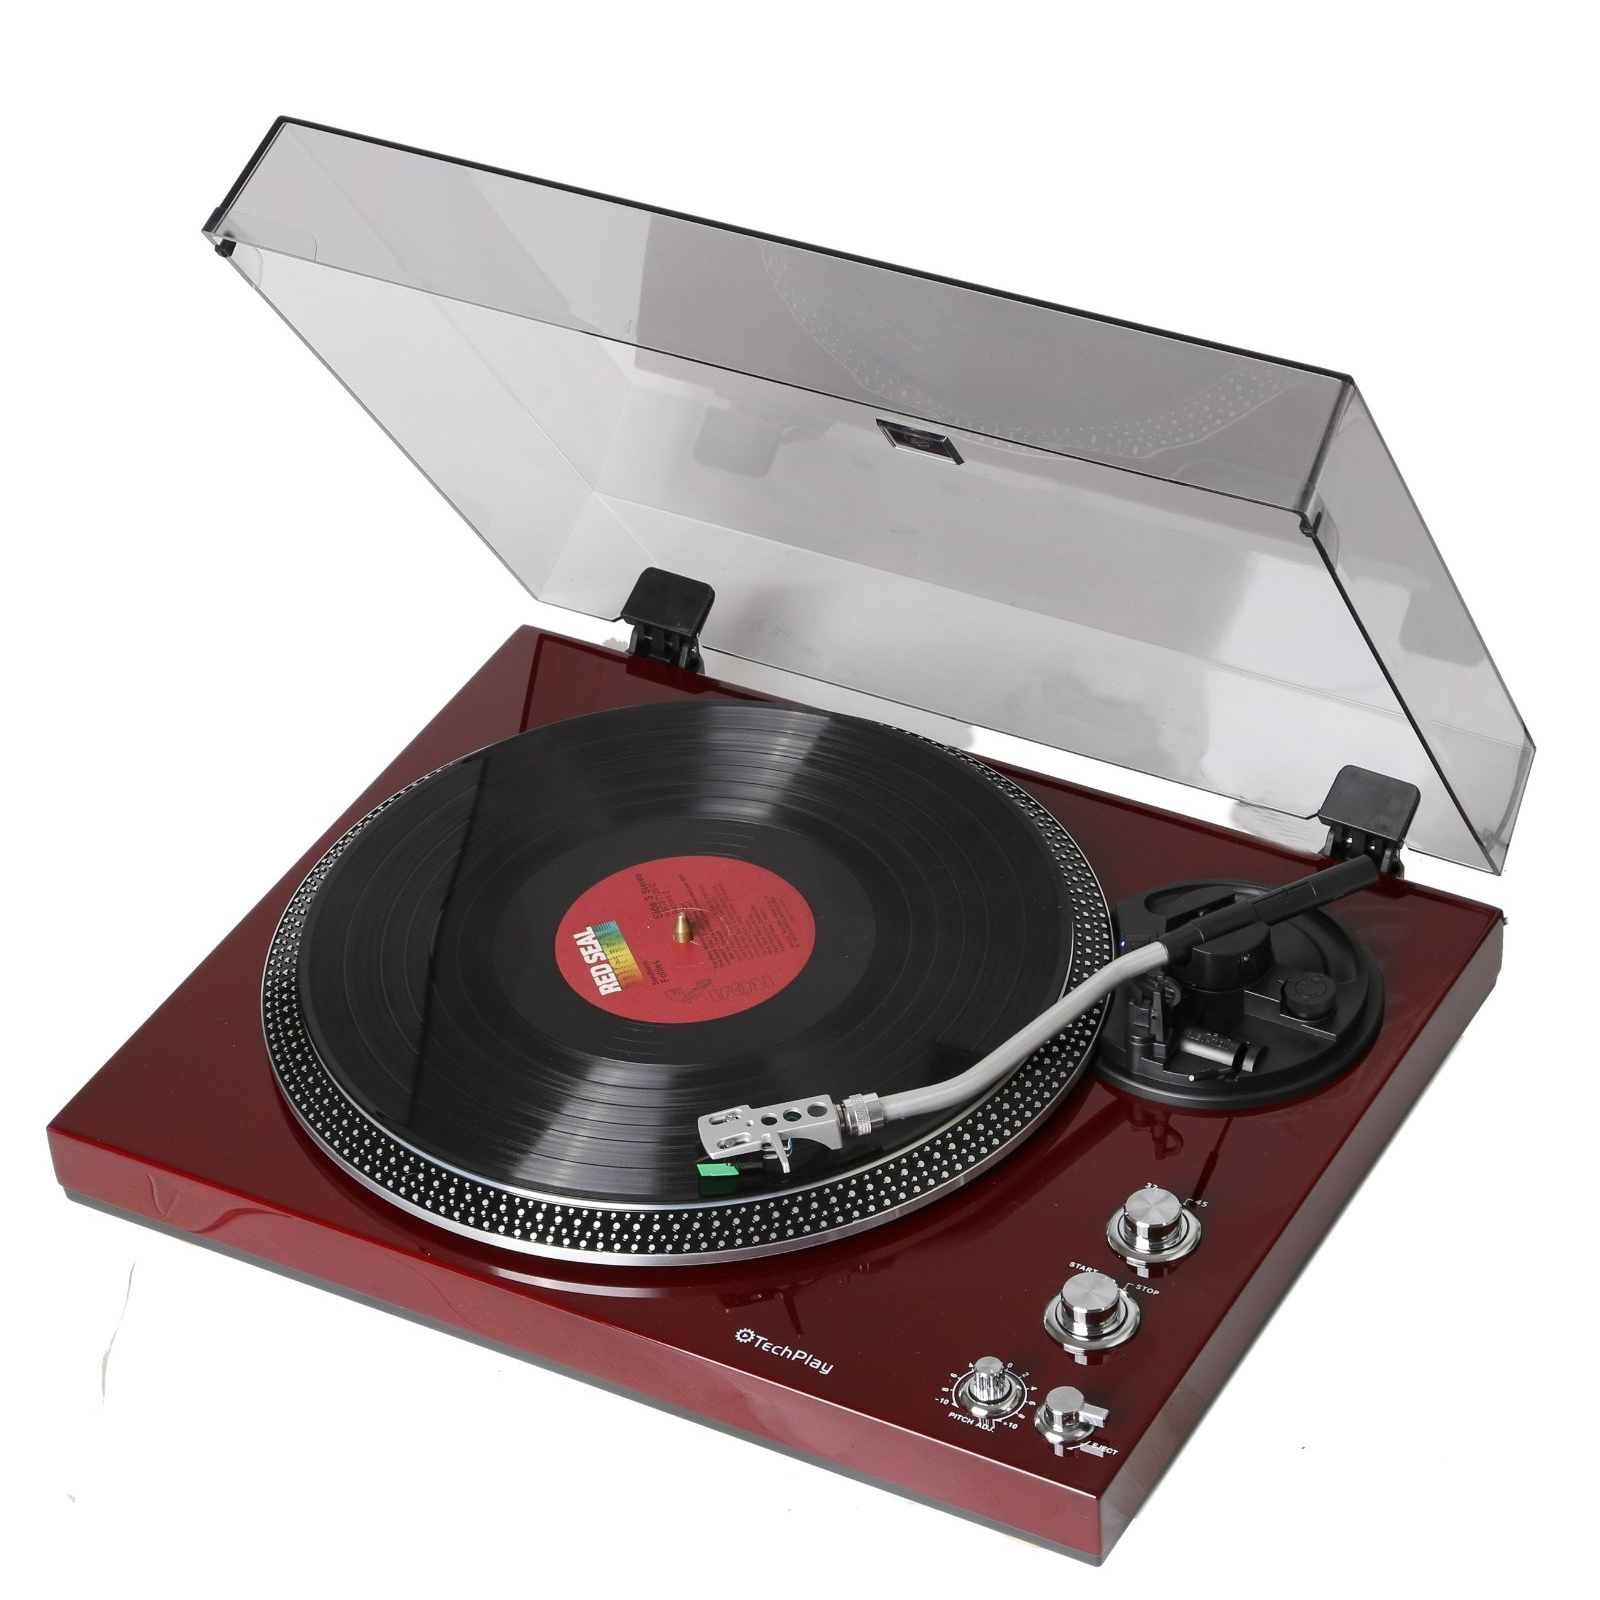 TechPlay Analog Turntable with Built-in Phono Pre-amplifier, By-Pass selecter,... by Tech Play